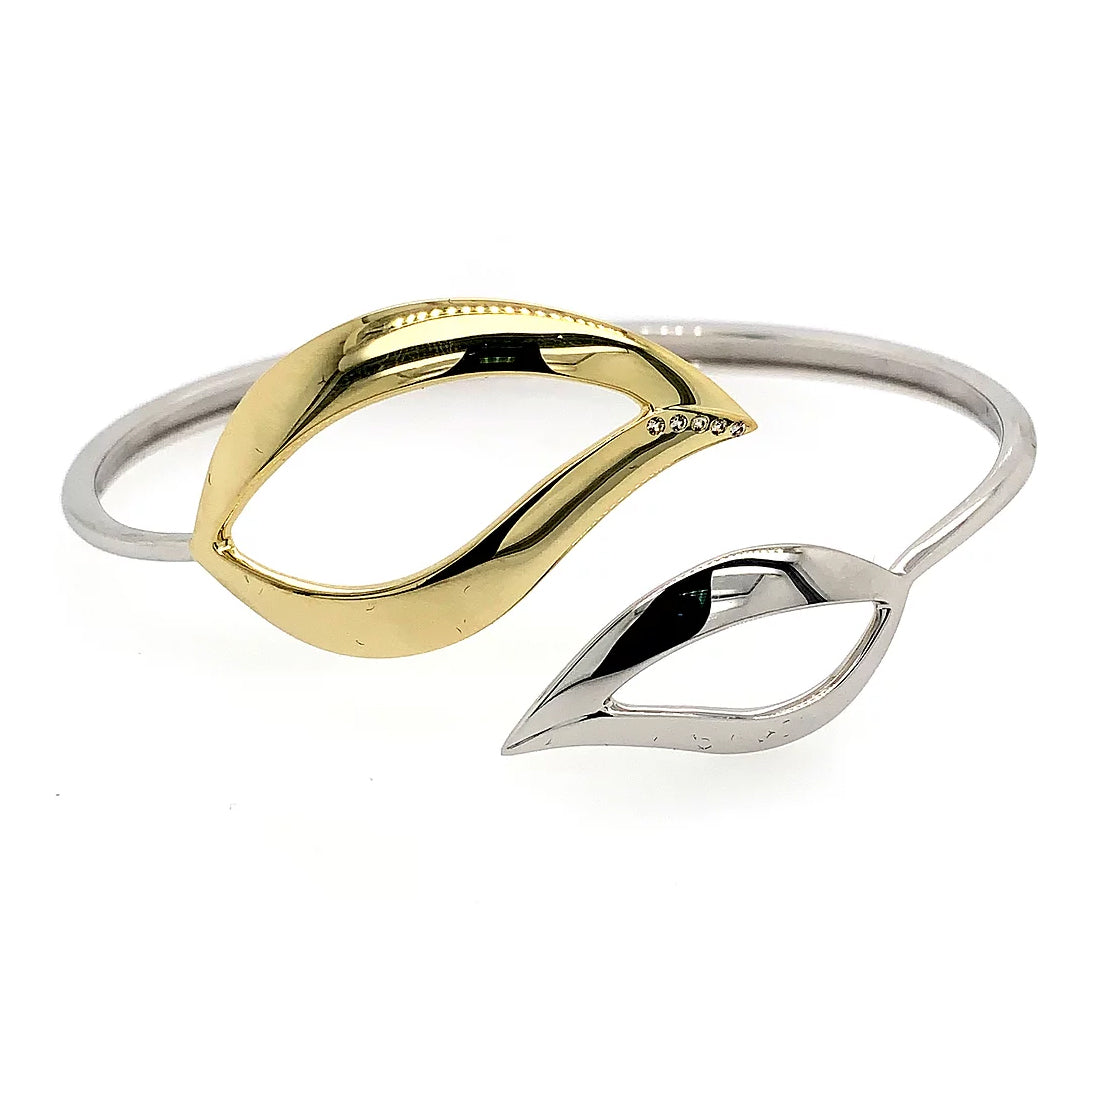 Open Leaf Hinged Cuff Bracelet, Sterling Silver and Gold Plating